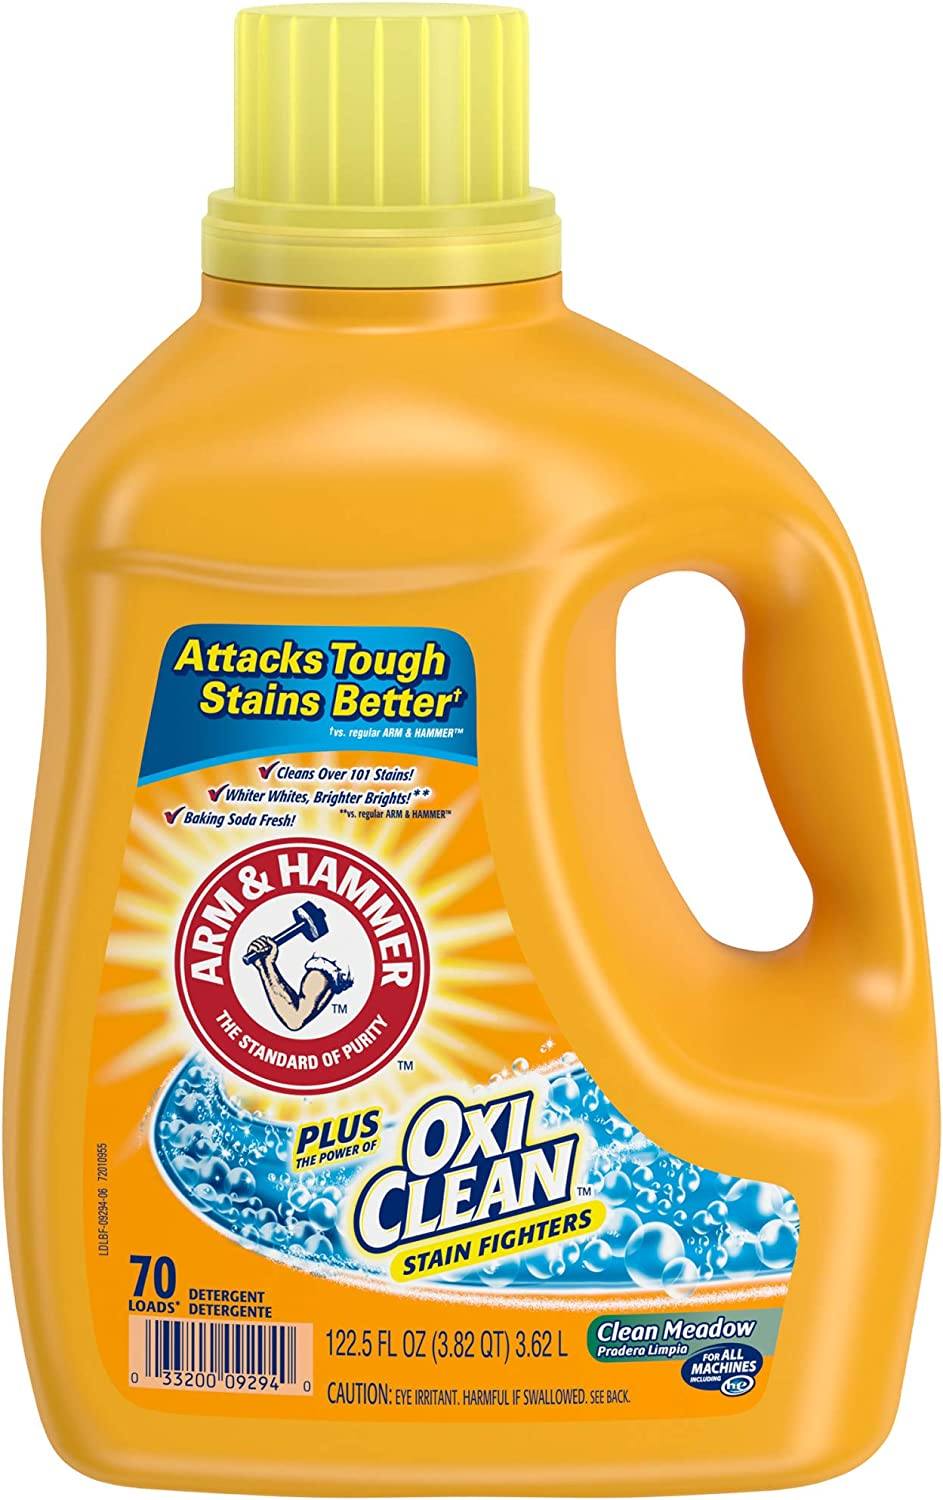 Arm & Hammer Plus OxiClean Clean Meadow Liquid Laundry Detergent, 70 loads